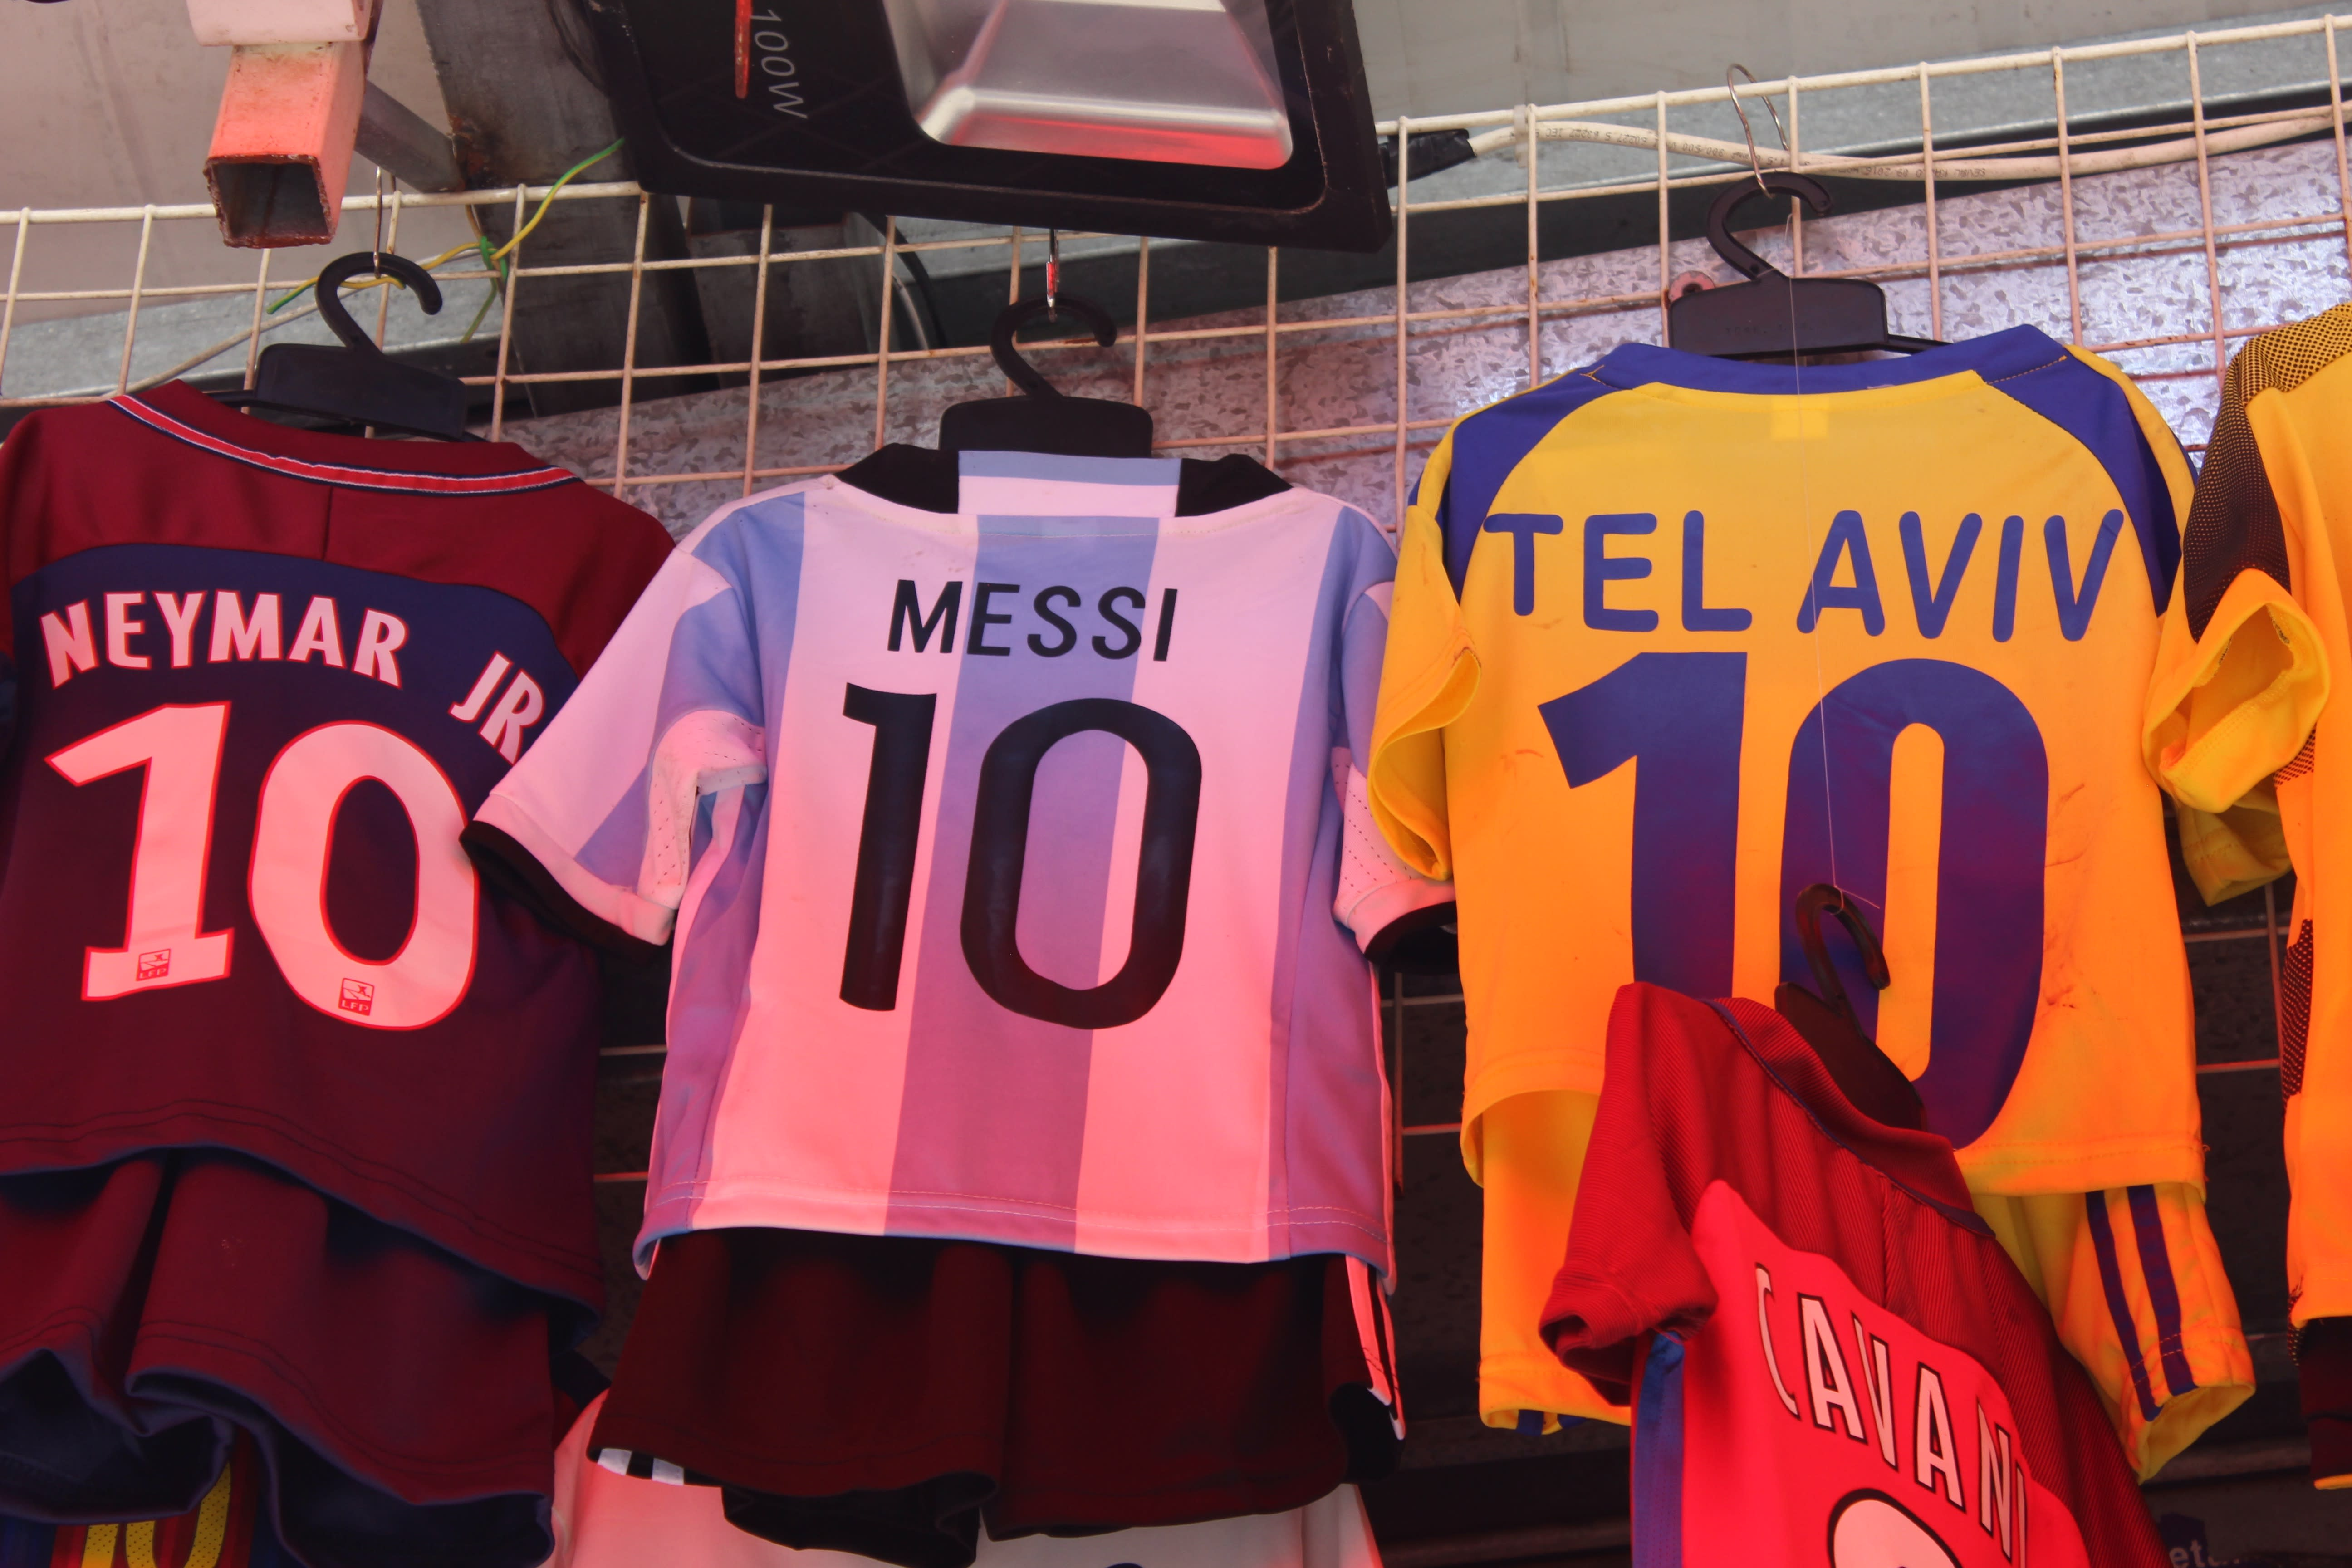 Messi shirts are a popular sight in Israel (Ruty Korotaev)